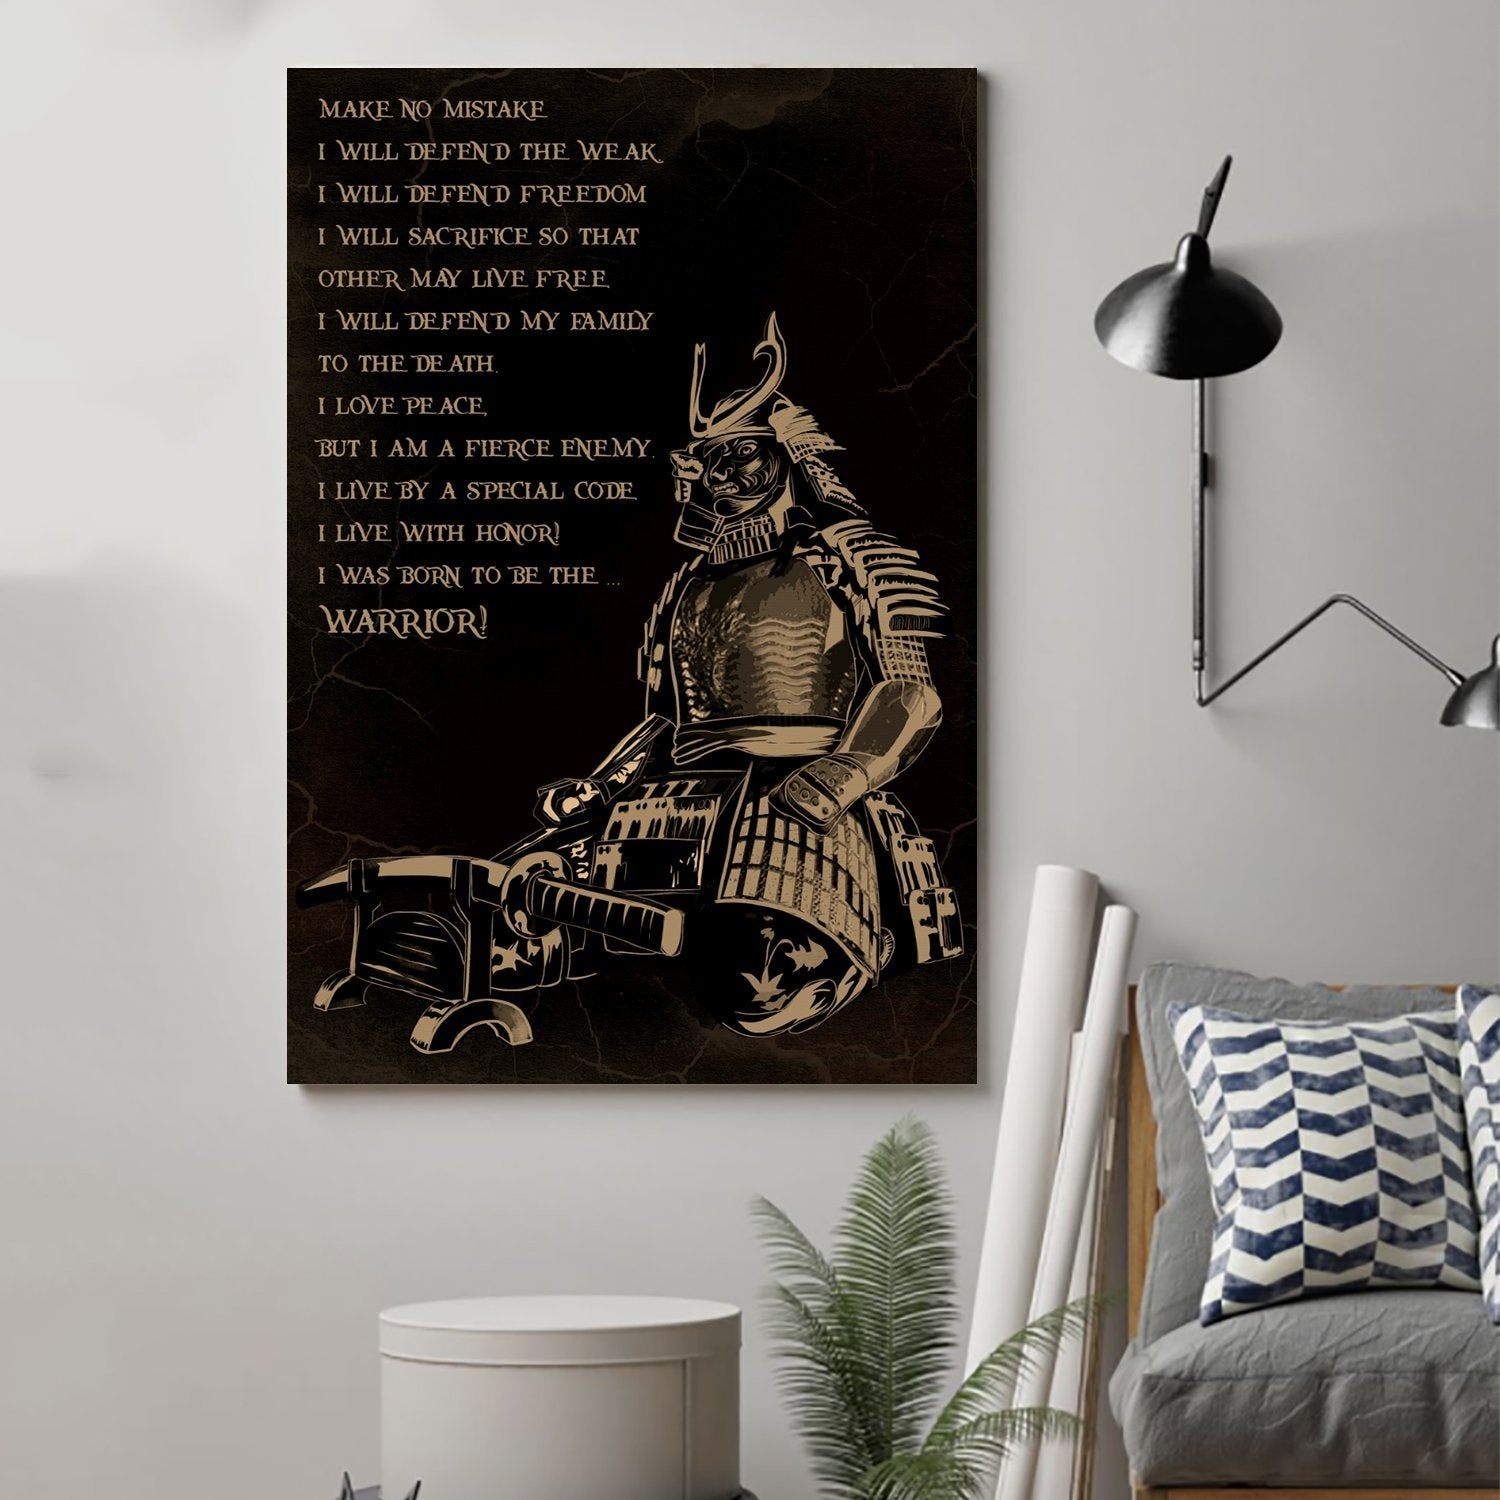 (cv26) Samurai Poster - i was born to be the warrior